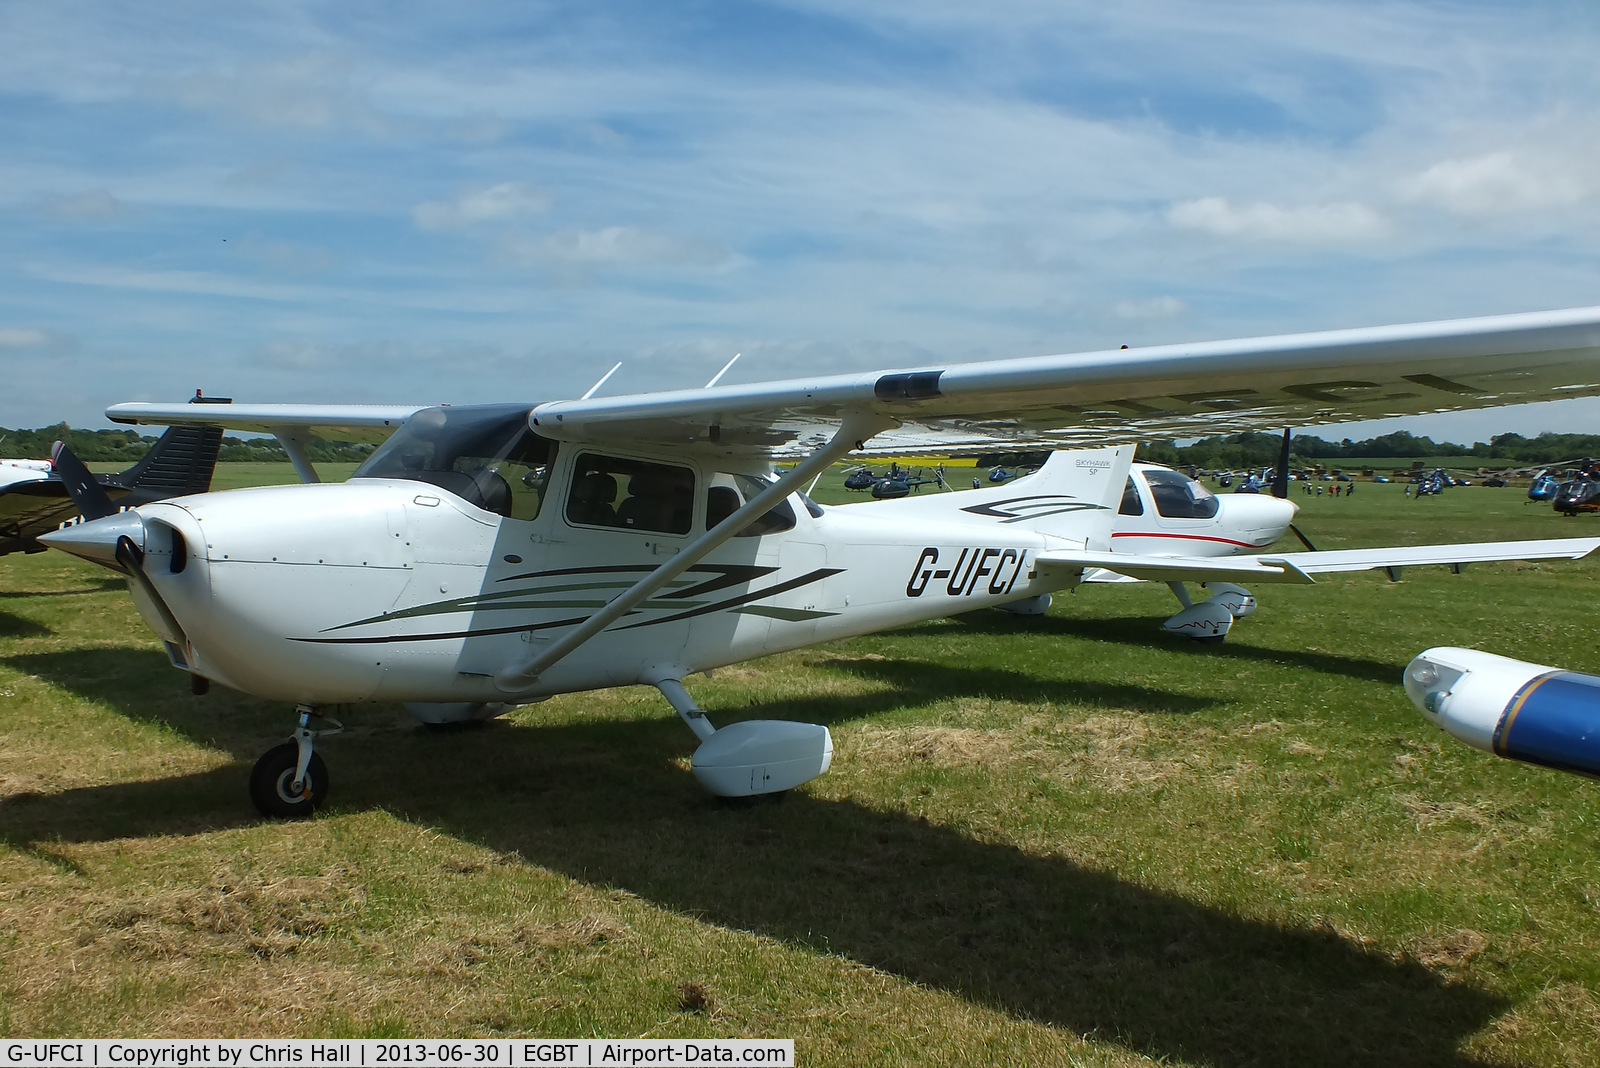 G-UFCI, 2007 Cessna 172S Skyhawk C/N 172S-10508, Visitor at Turweston for the British F1 Grand Prix at Silverstone